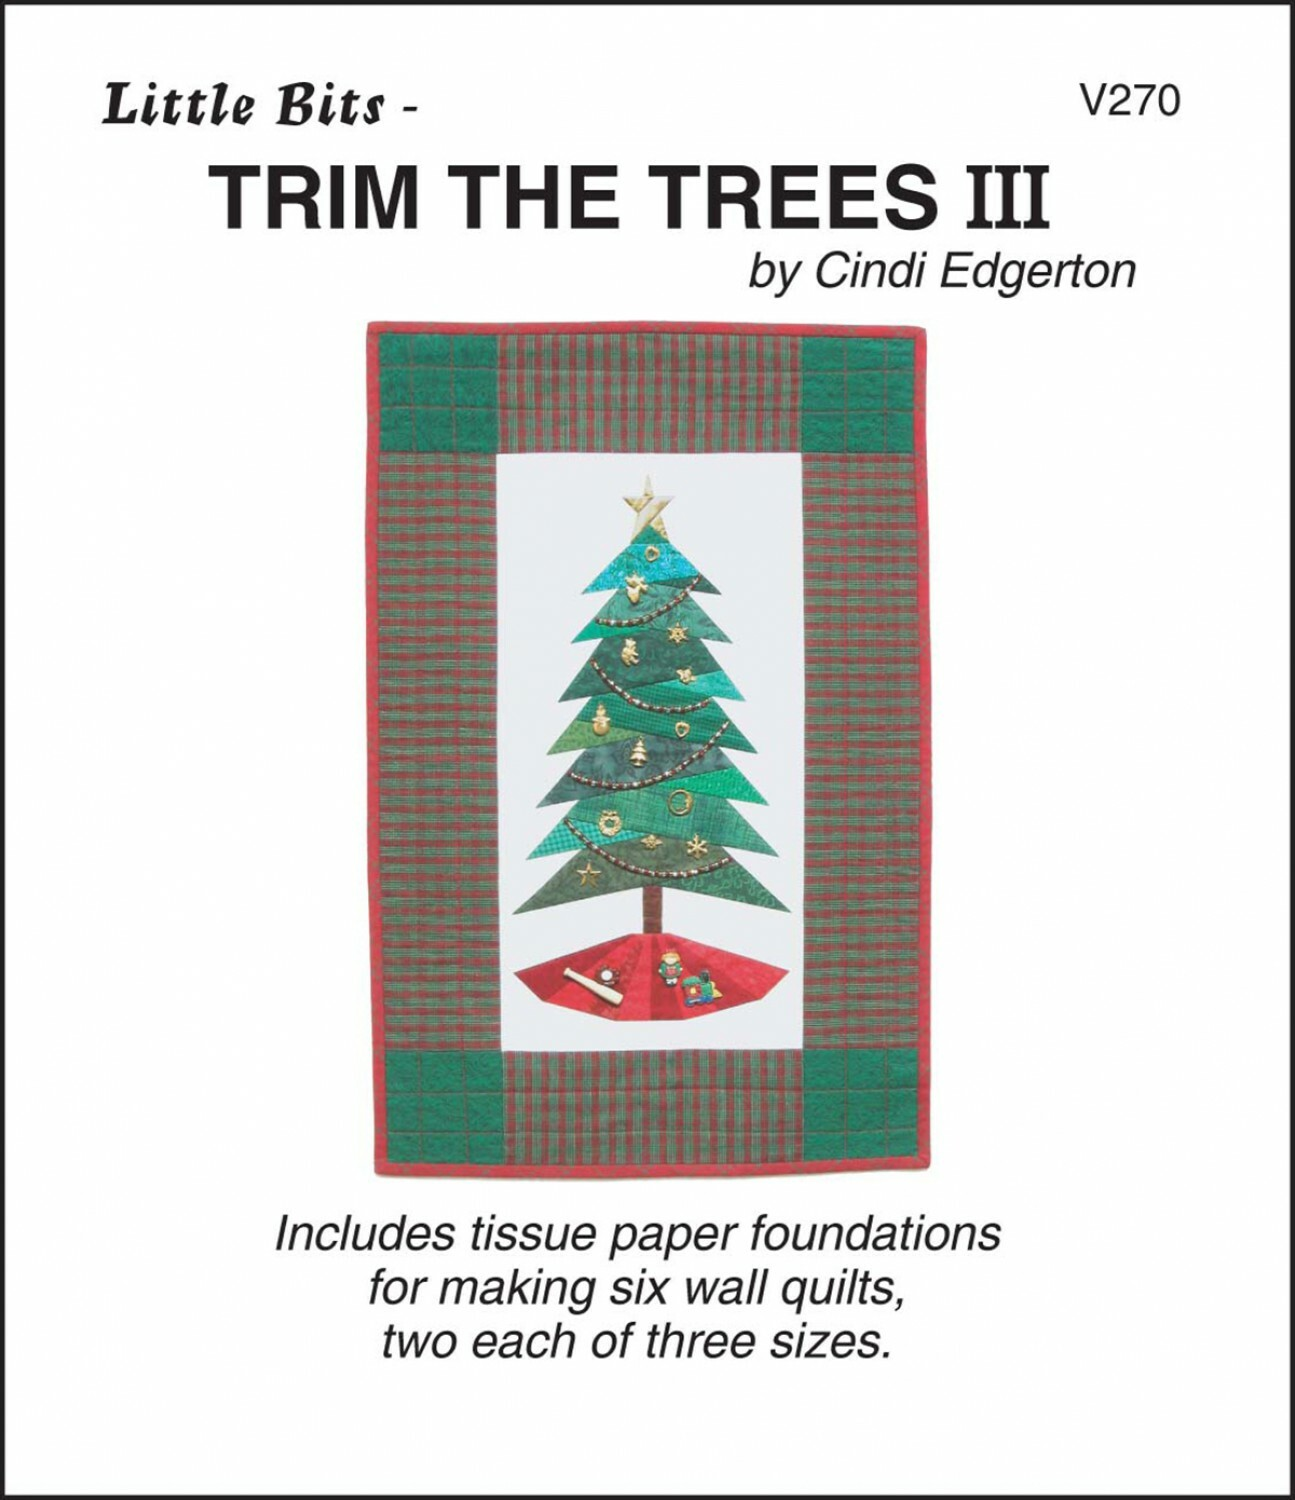 Trim the Tree 3 Pattern QBTD32PU